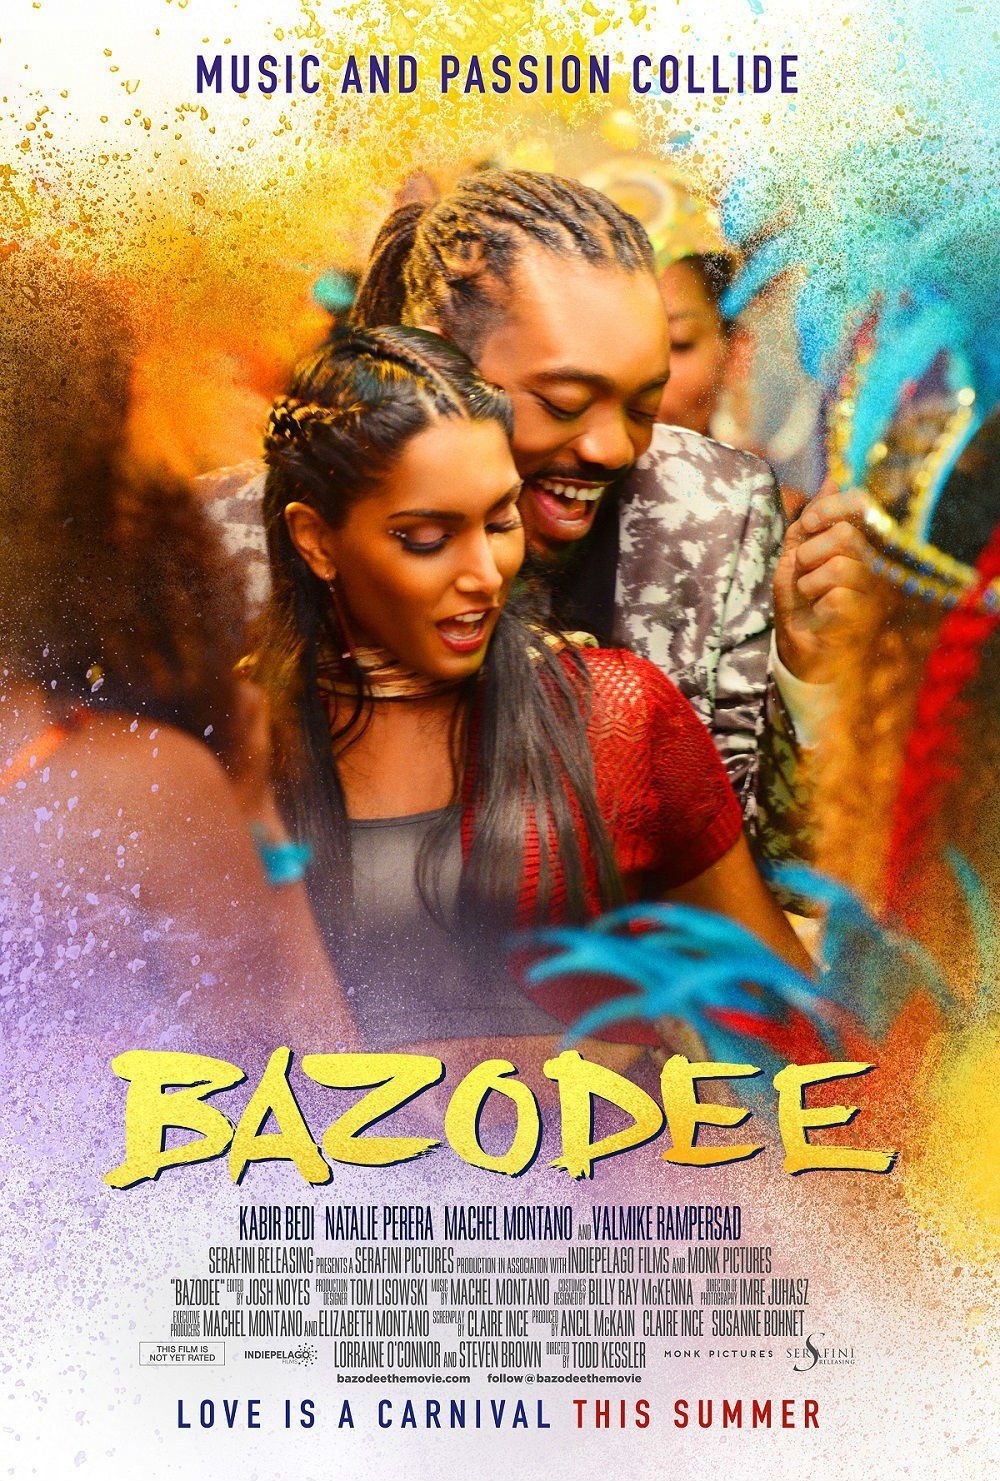 Watch bazodee online for free cinerilldiet music pinterest watch bazodee online for free cinerilldiet sciox Choice Image